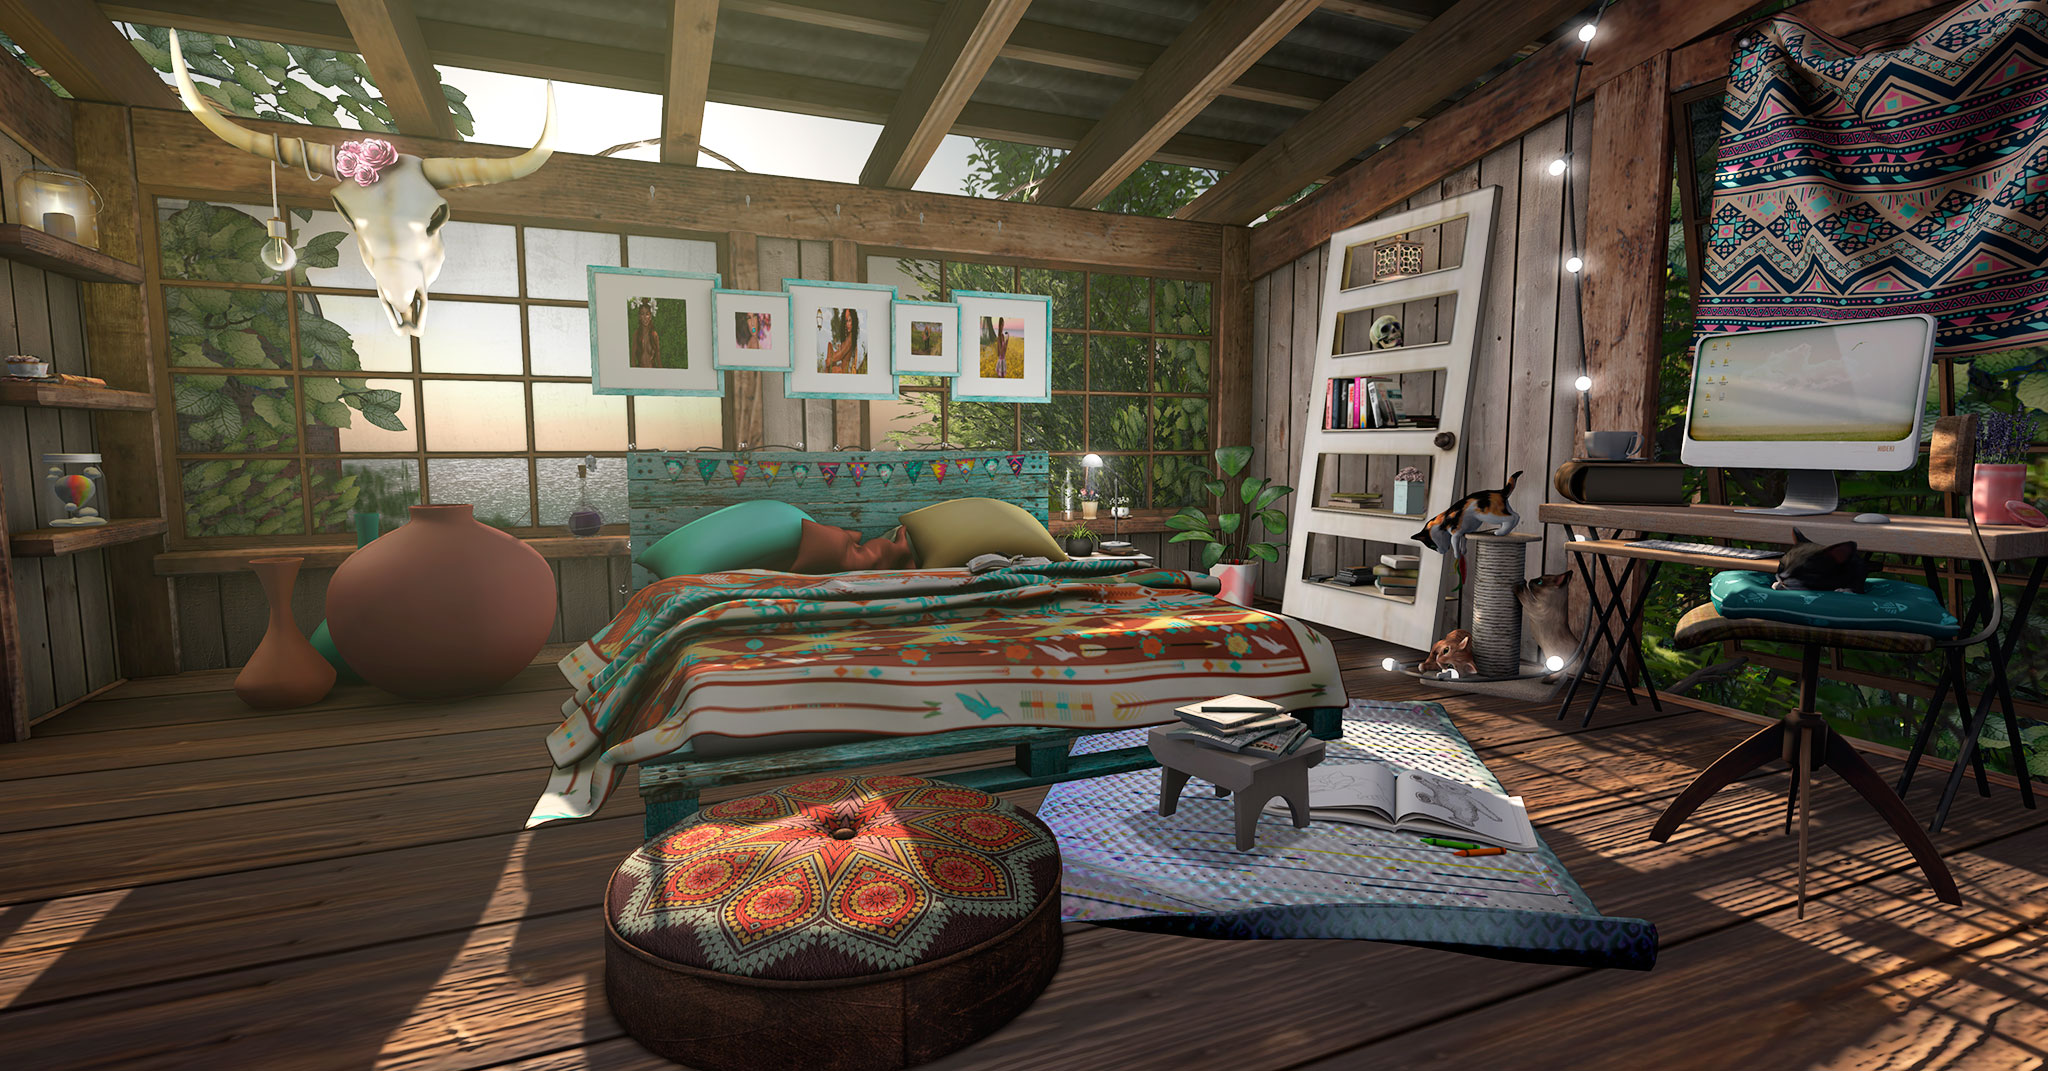 The place of my dreams is boho styled